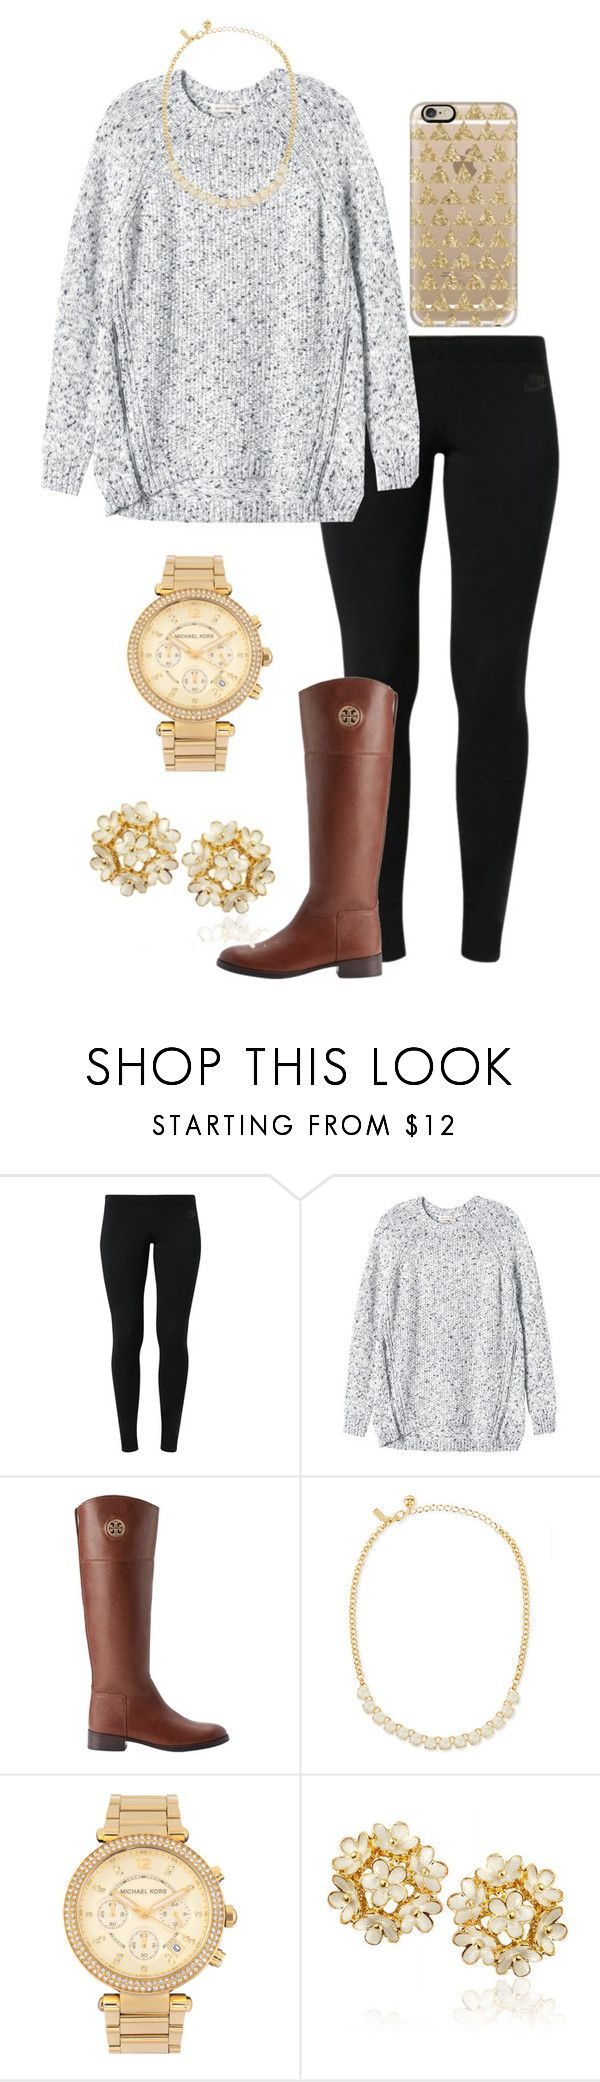 """Oh what a day is today! "" by madelyn-abigail ❤ liked on Polyvore featuring NIKE, Rebecca Taylor, Tory Burch, Kate Spade, Michael Kors and Casetify"